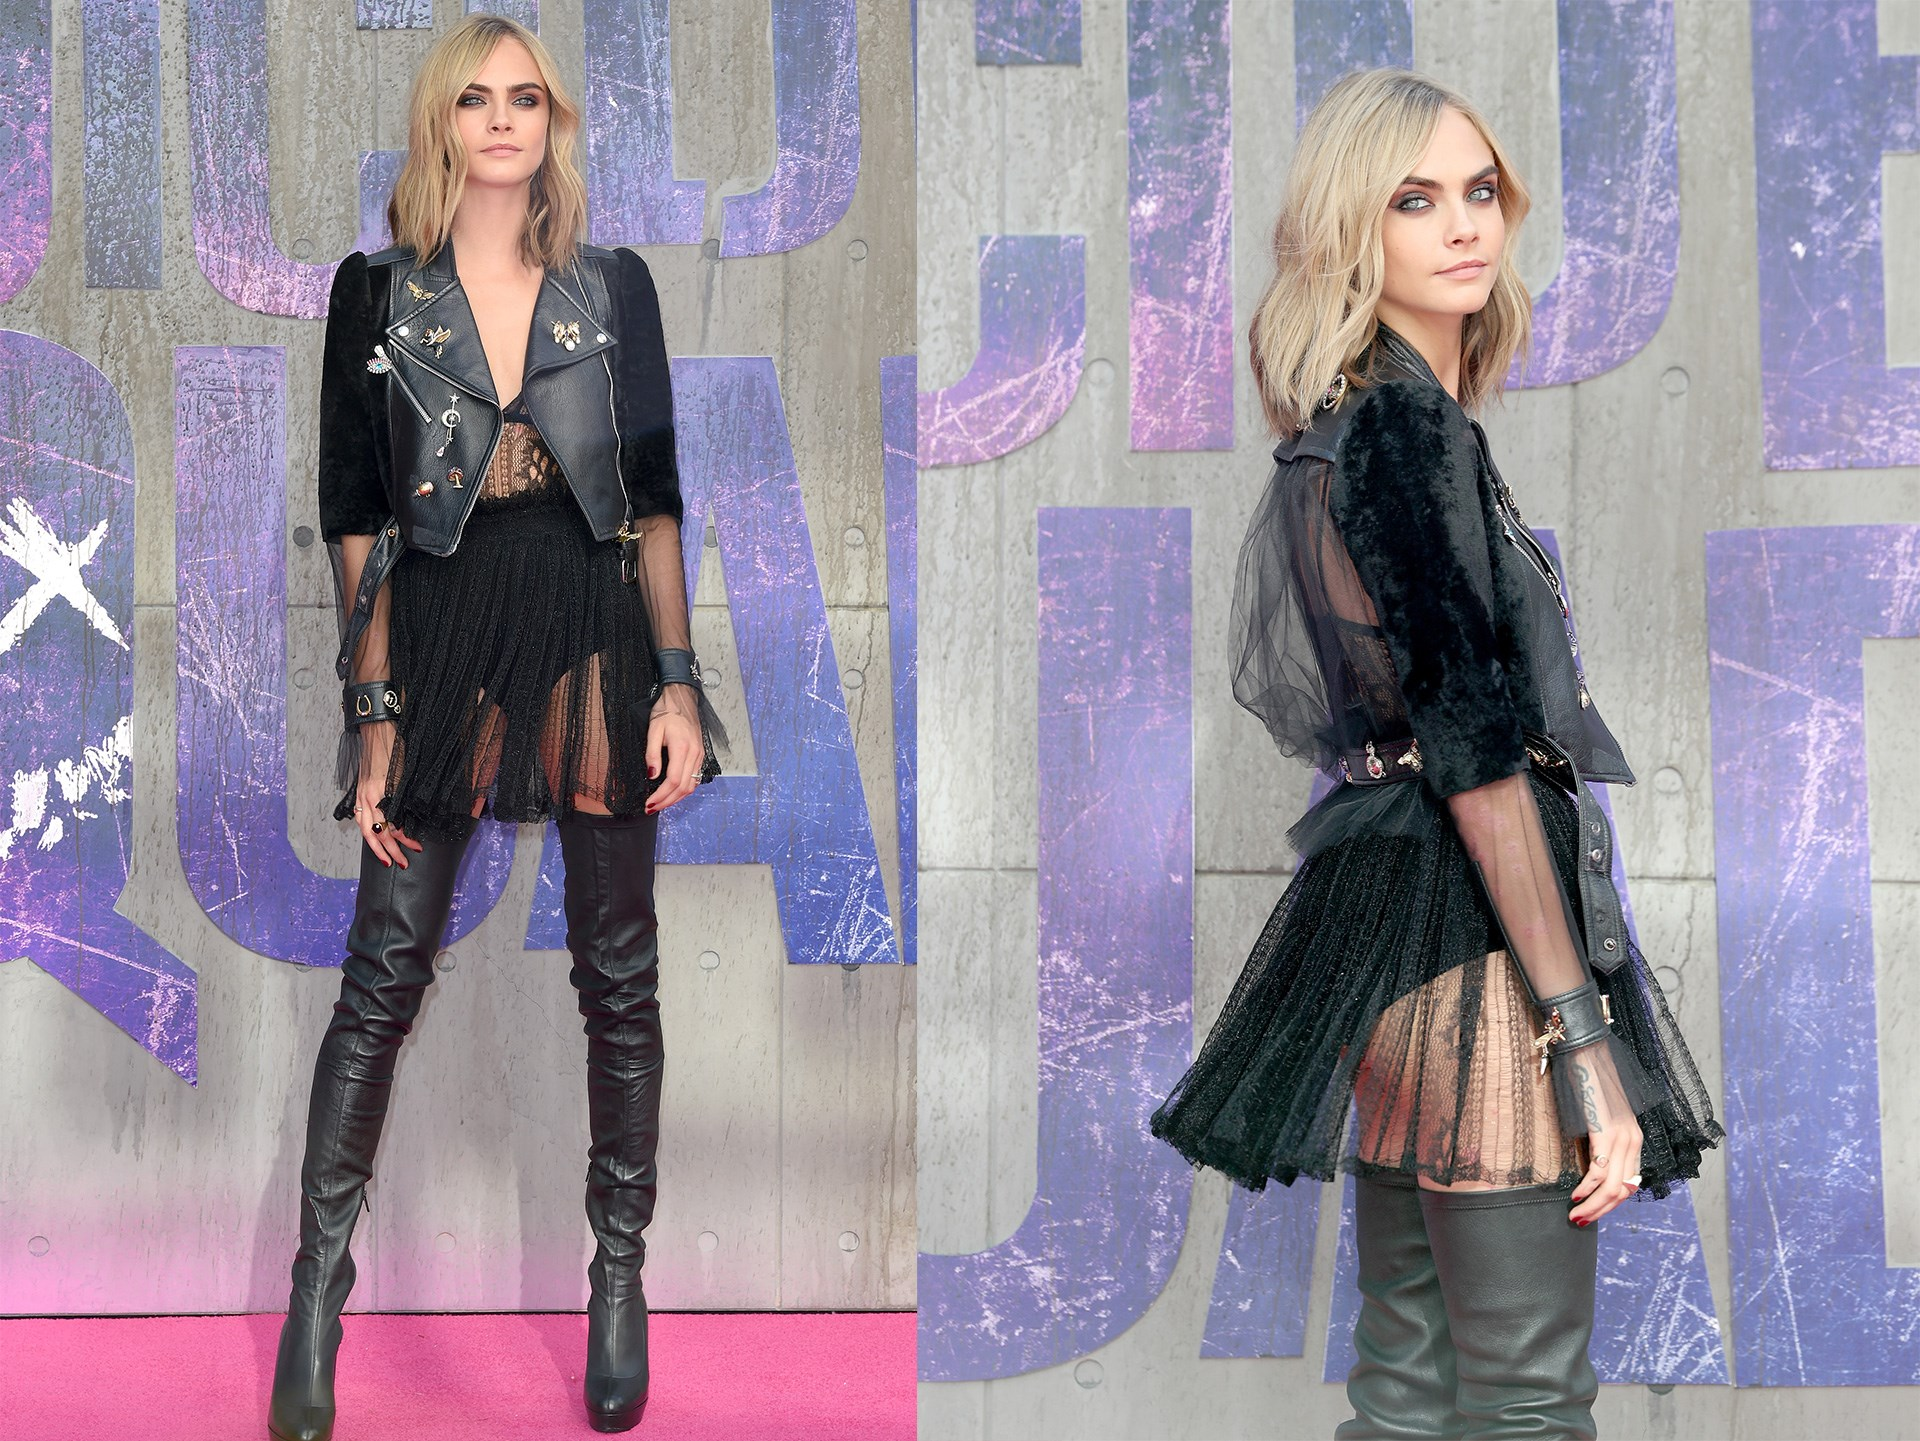 **Cara Delevingne** decided to ditch the pants and rocked an ADORABLE sheer lace dress, thigh-high boots and leather jacket ensemble at the London premiere of *Suicide Squad.*